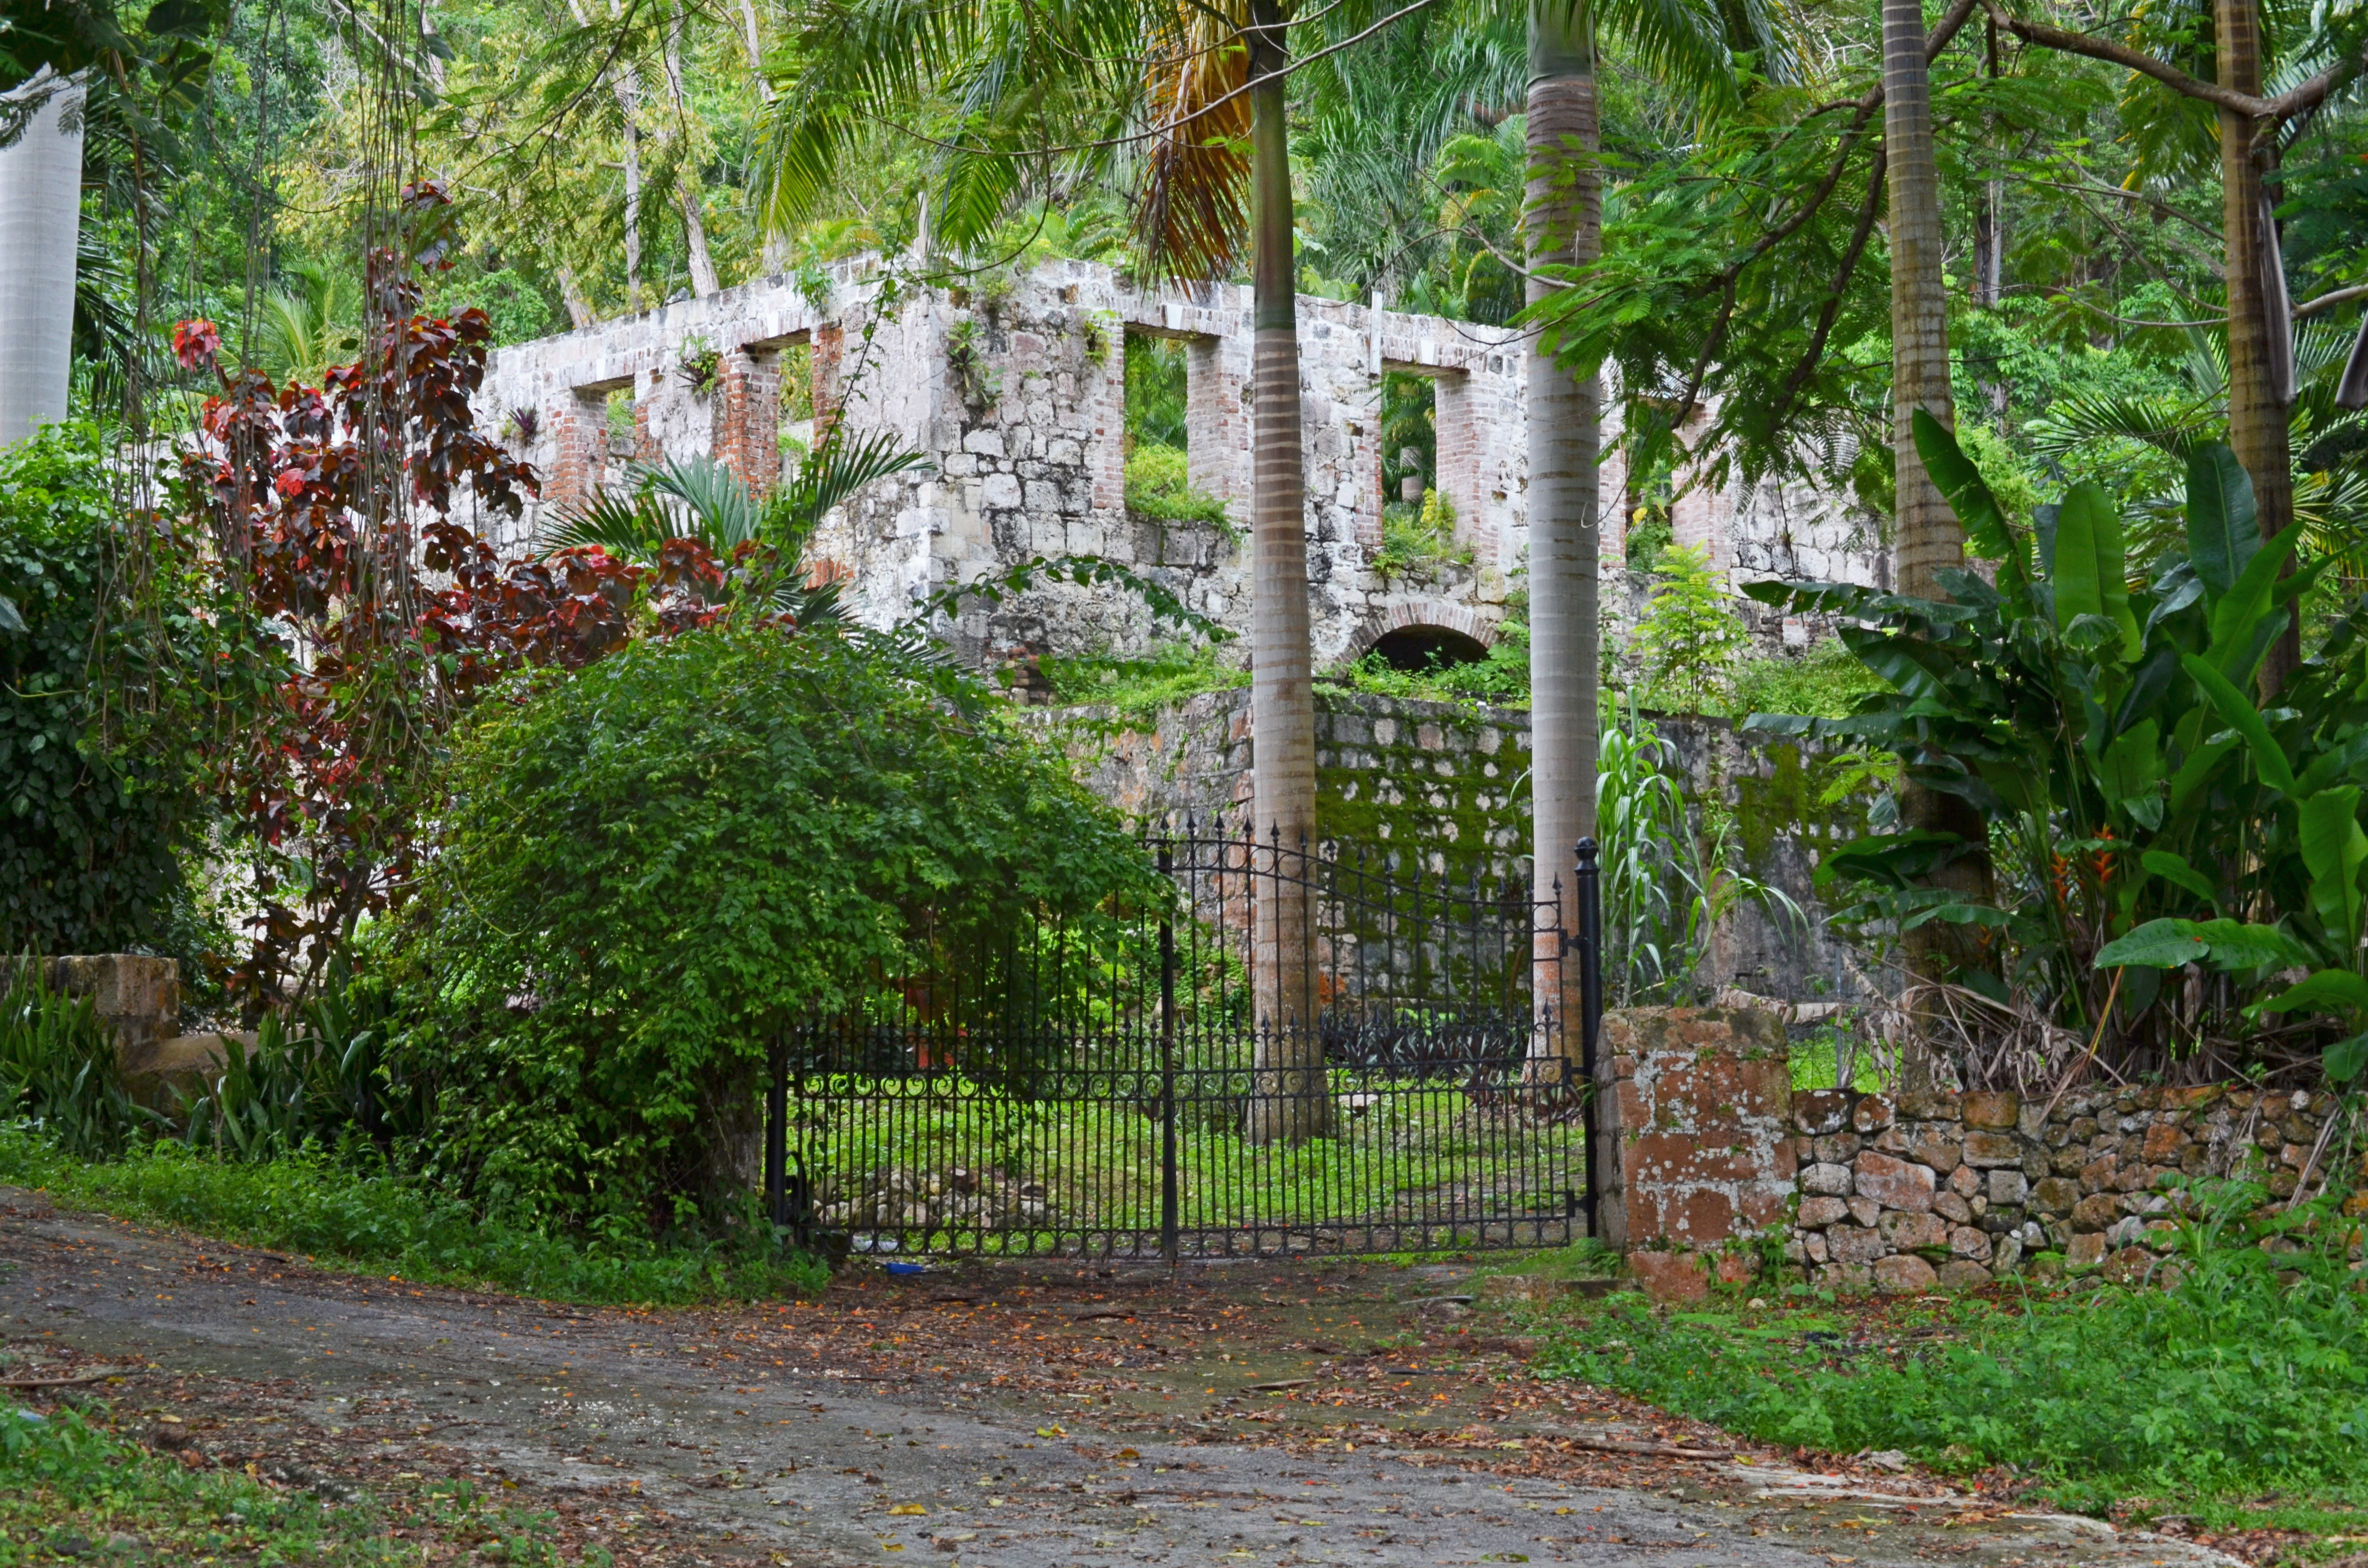 Ruins of Slave Owner Home in Jamaica